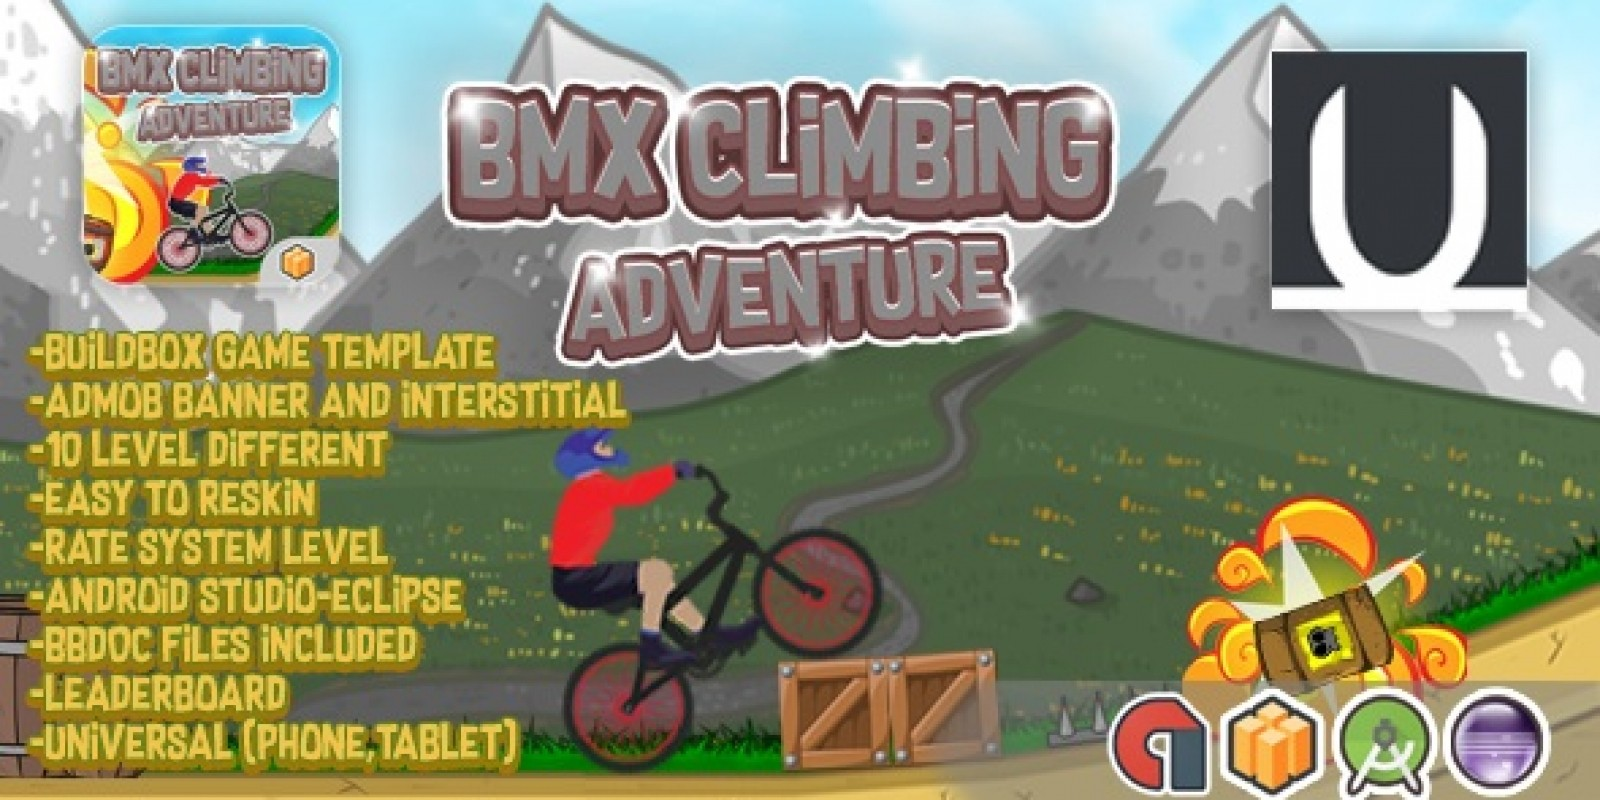 BMX Climbing Adventure - Buildbox Template